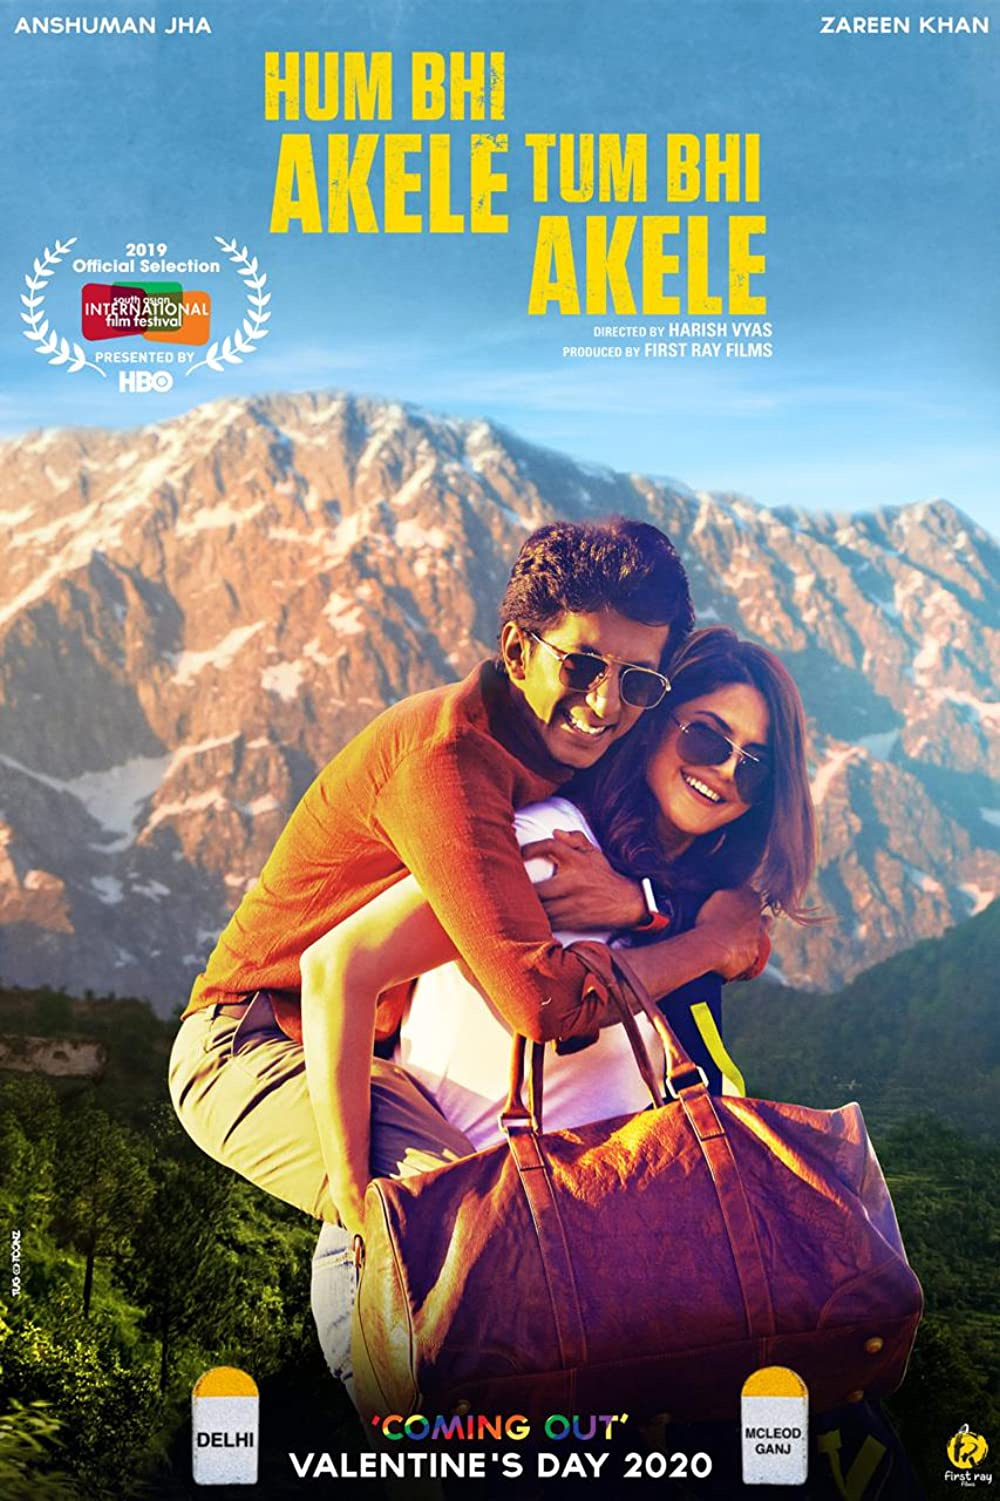 Hum Bhi Akele Tum Bhi Akele 2021 Hindi Full Movie 720p HDRip 1.3GB ESub Download